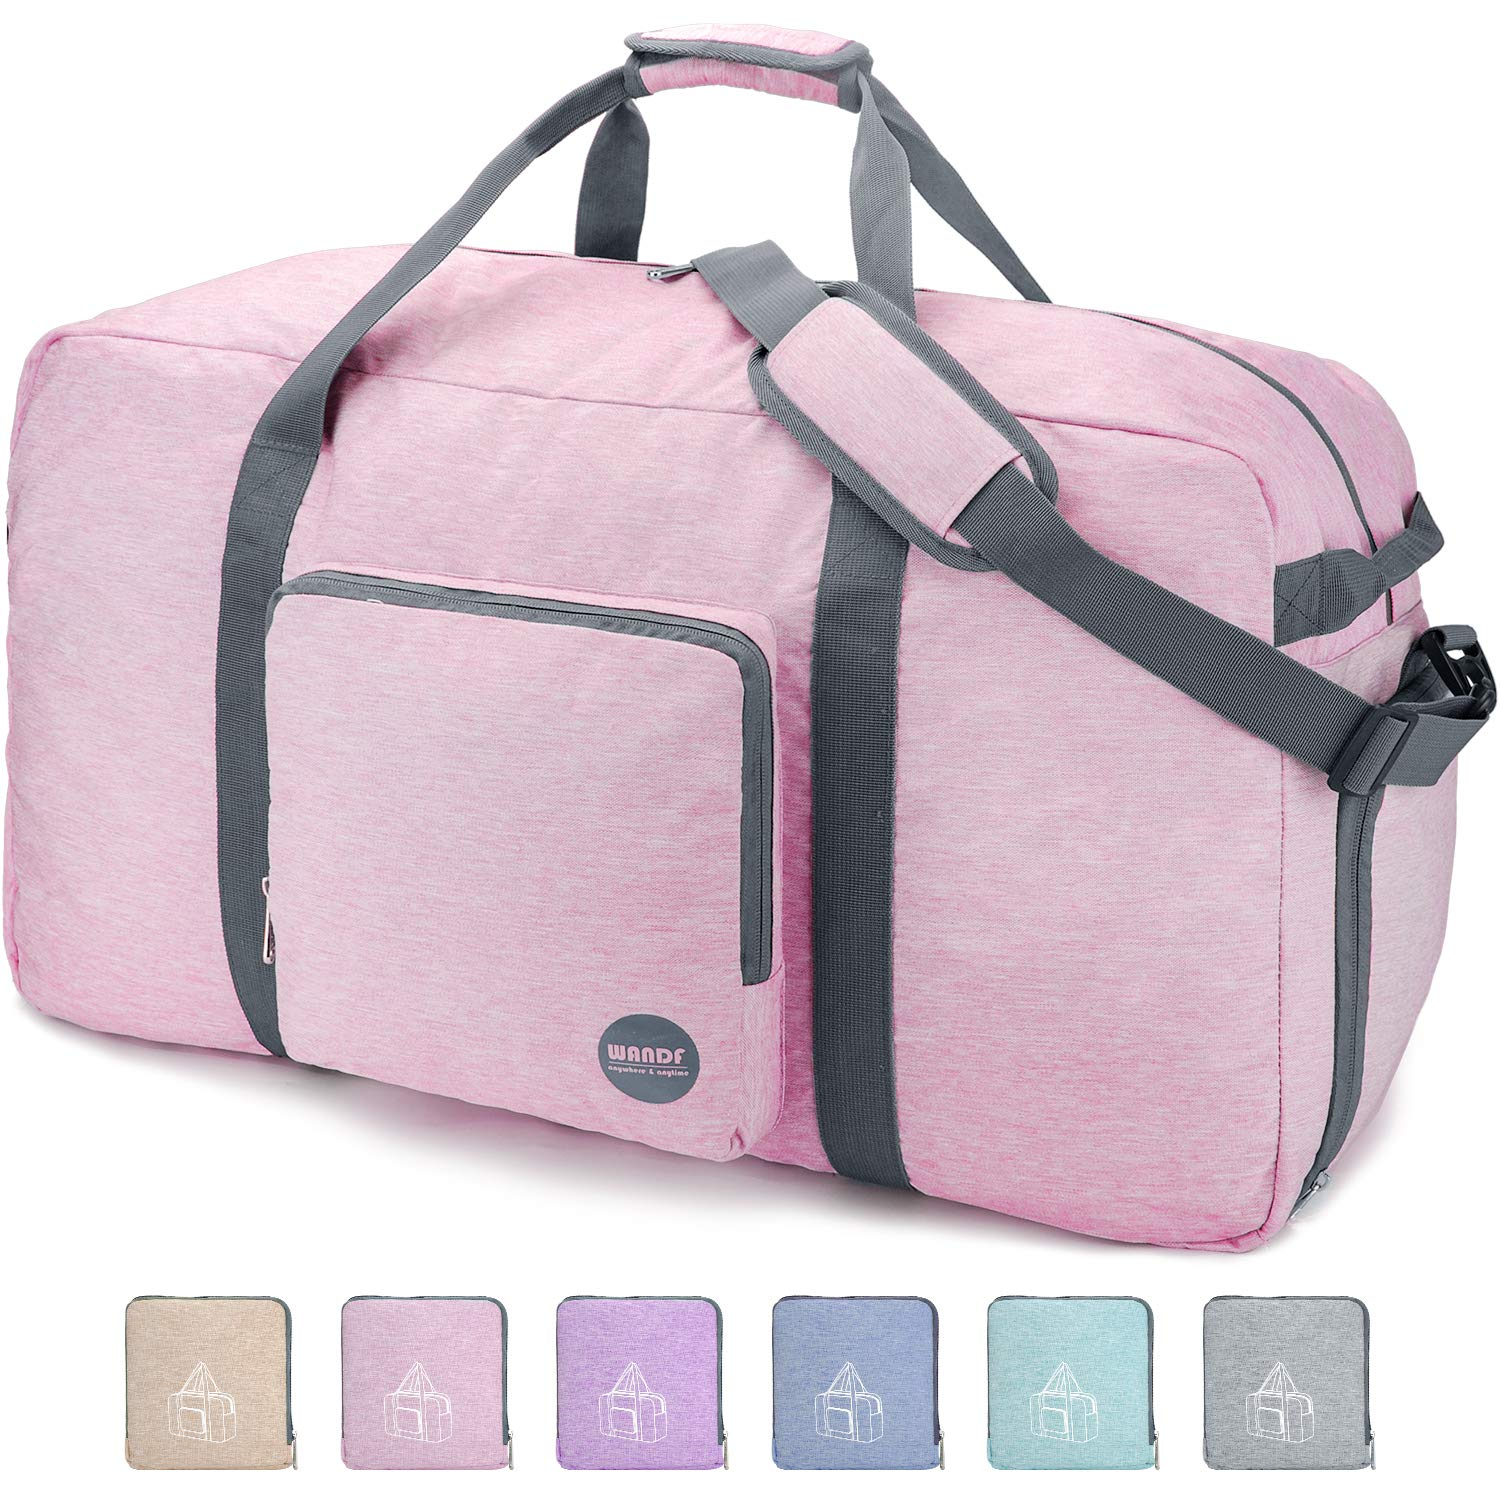 36'' Foldable Duffle Bag 120L for Travel Gym Sports Packable Lightweight Luggage Duffel Water-resistant By WANDF (Light Pink, 36 inches (120 Liter))